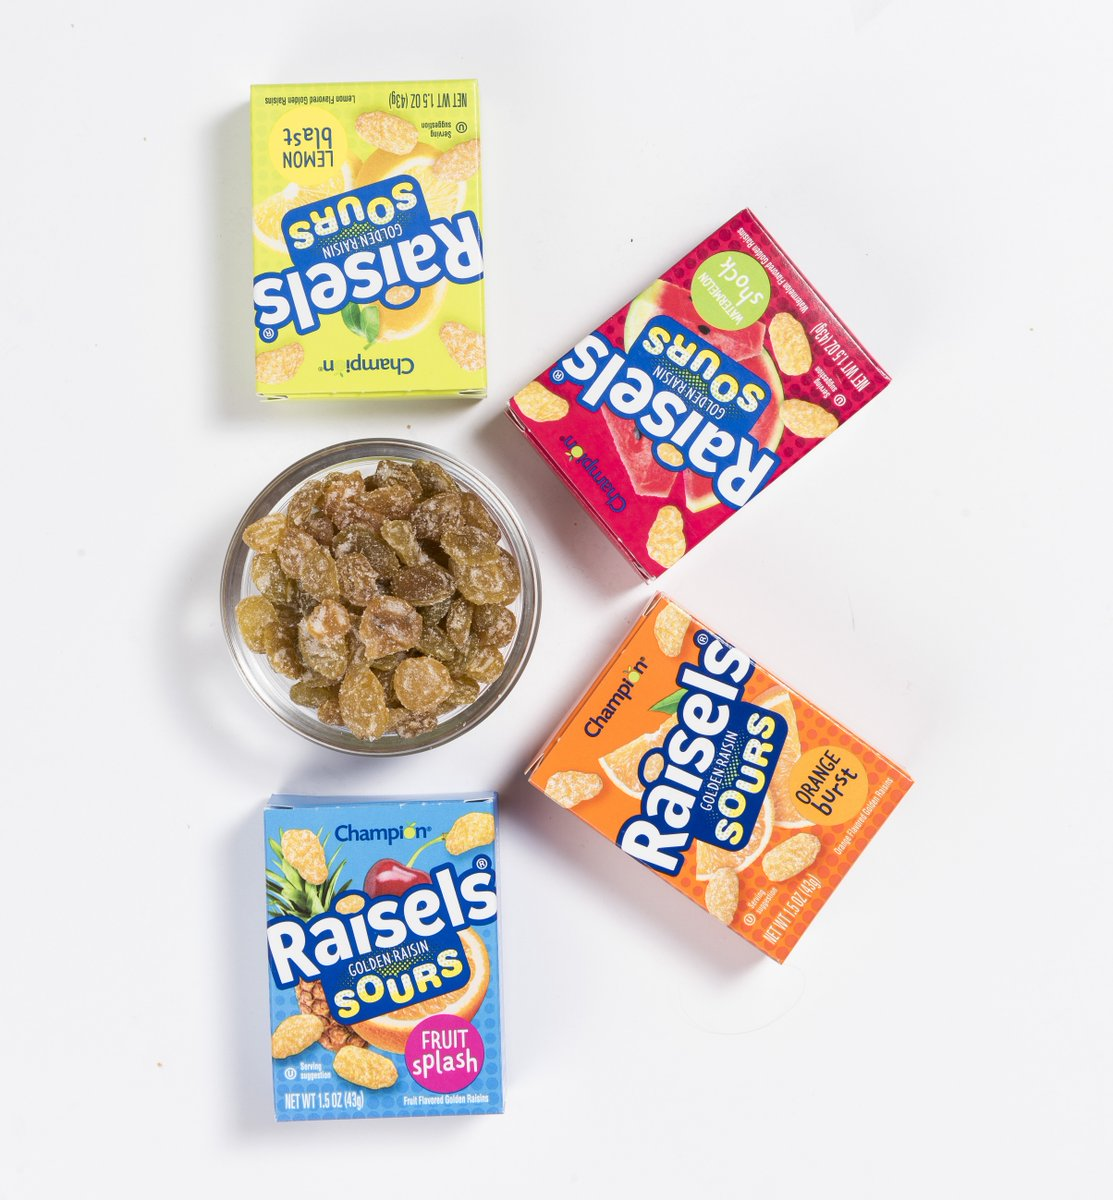 Raisels On Twitter Its Okay If Your Mouth Is Drooling Right Now